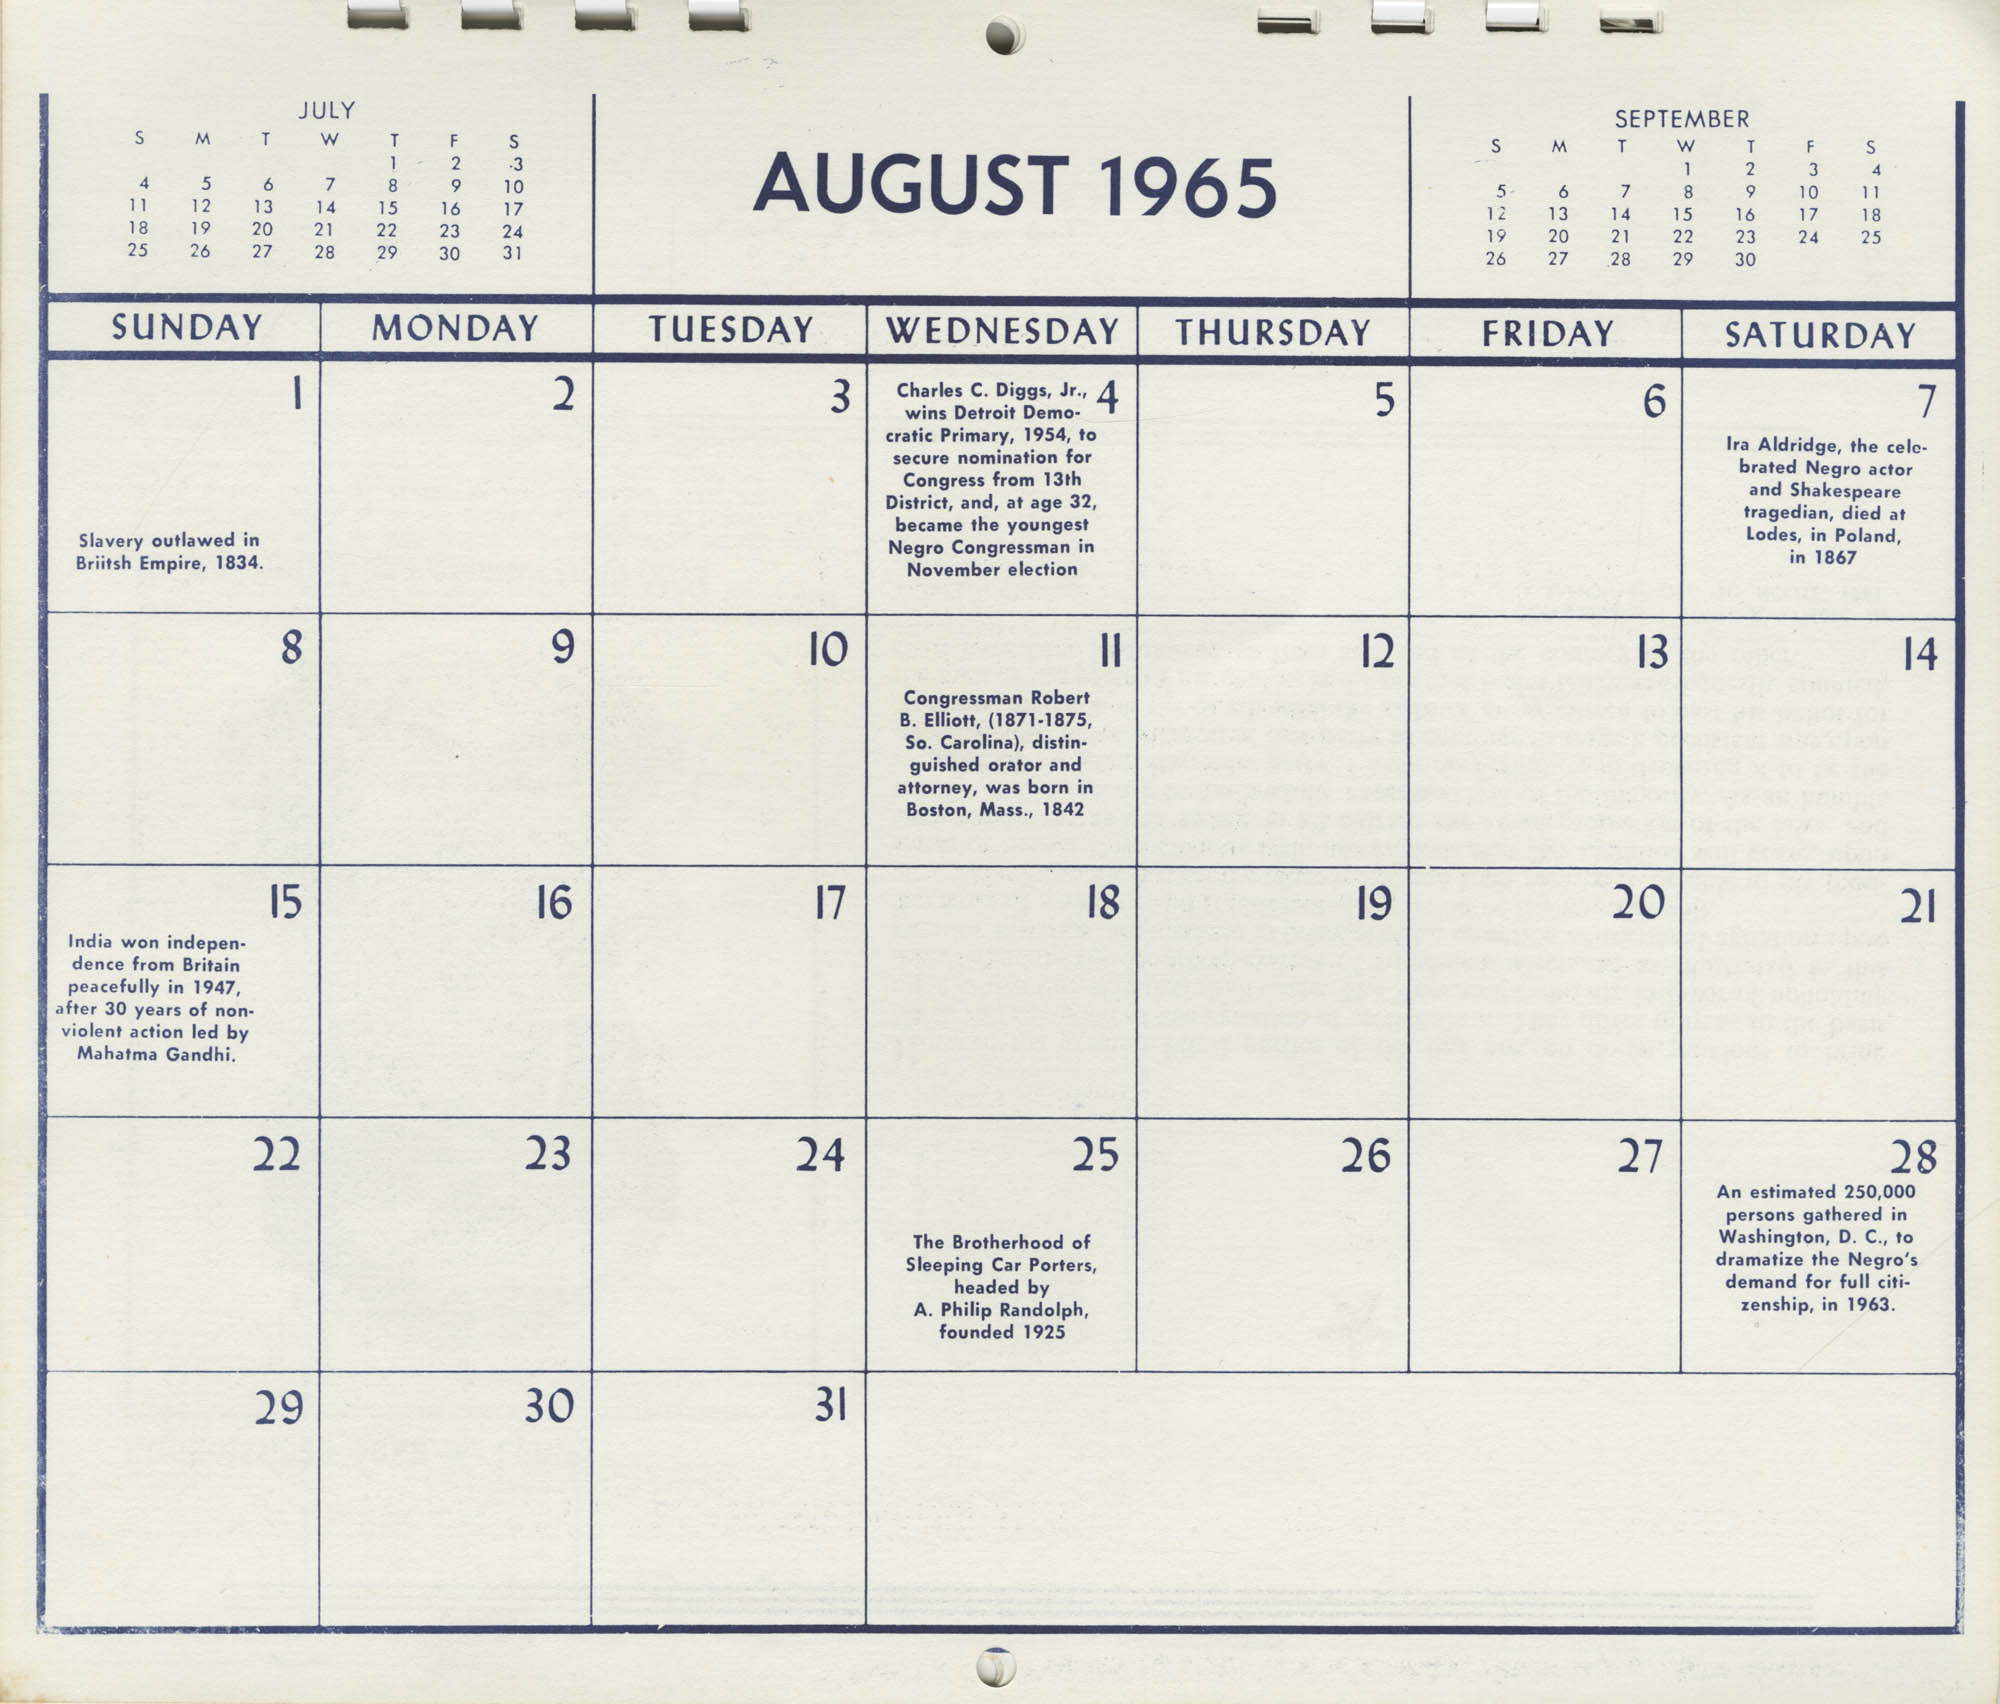 Southern Christian Leadership Conference Newsletter Calendar, August 1965, Bottom